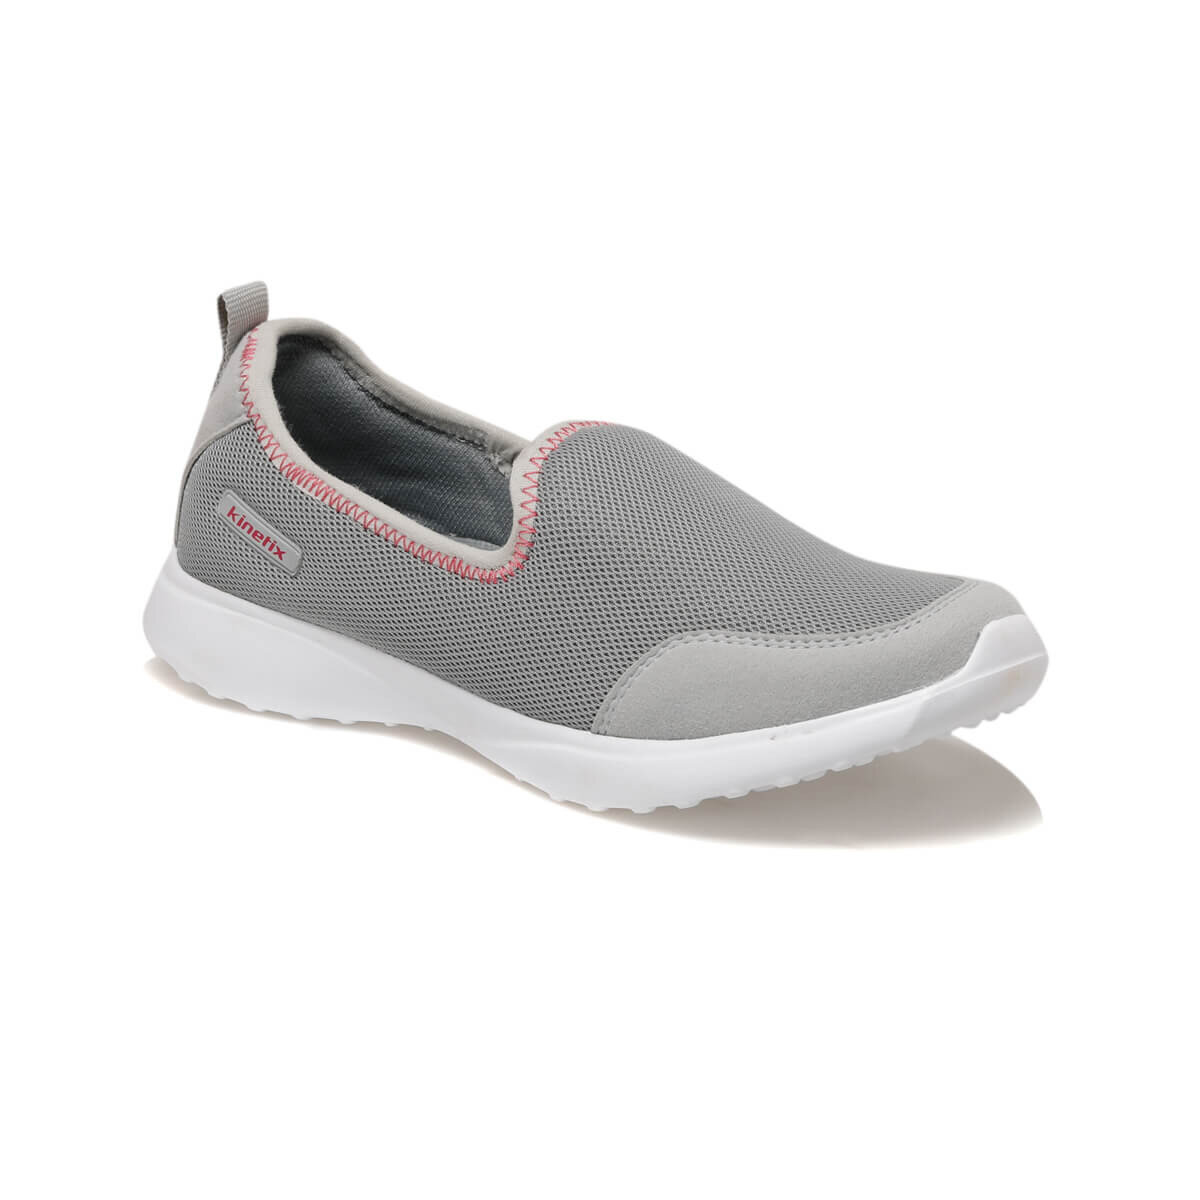 FLO LINDA Light Gray Women 'S Comfort Shoes KINETIX